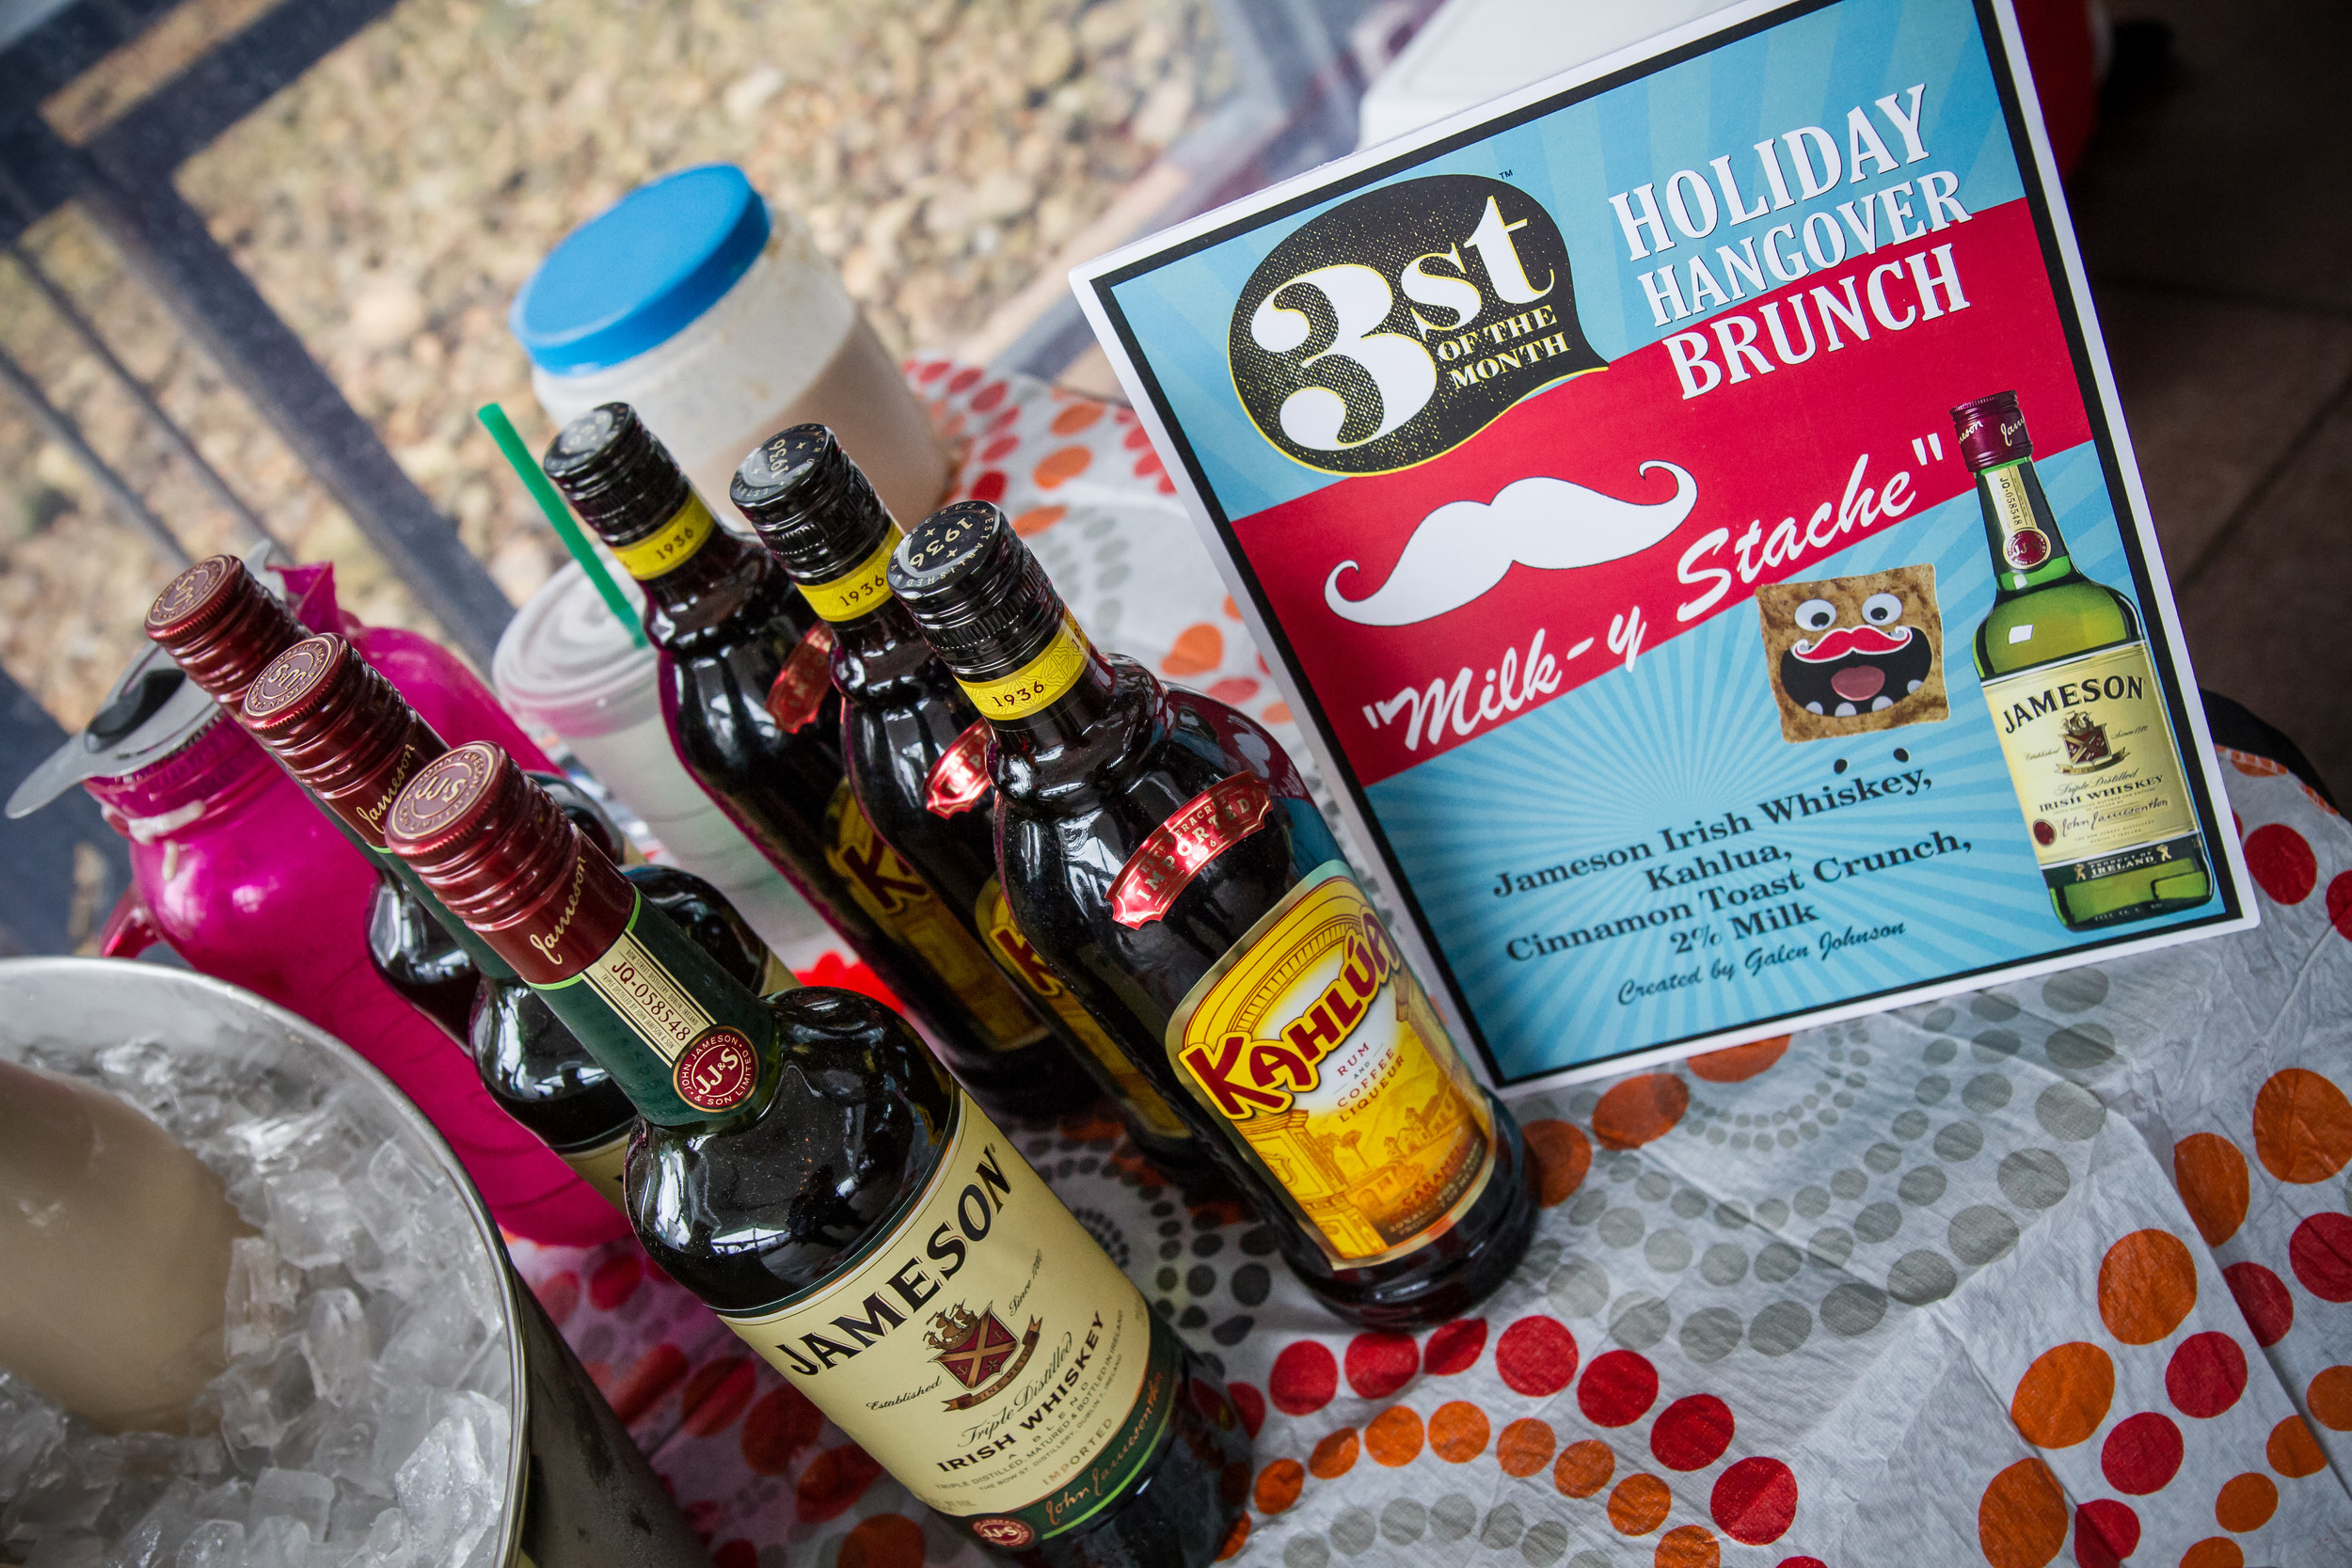 0826-3st Of The Month_Holiday Hangover Brunch.jpg